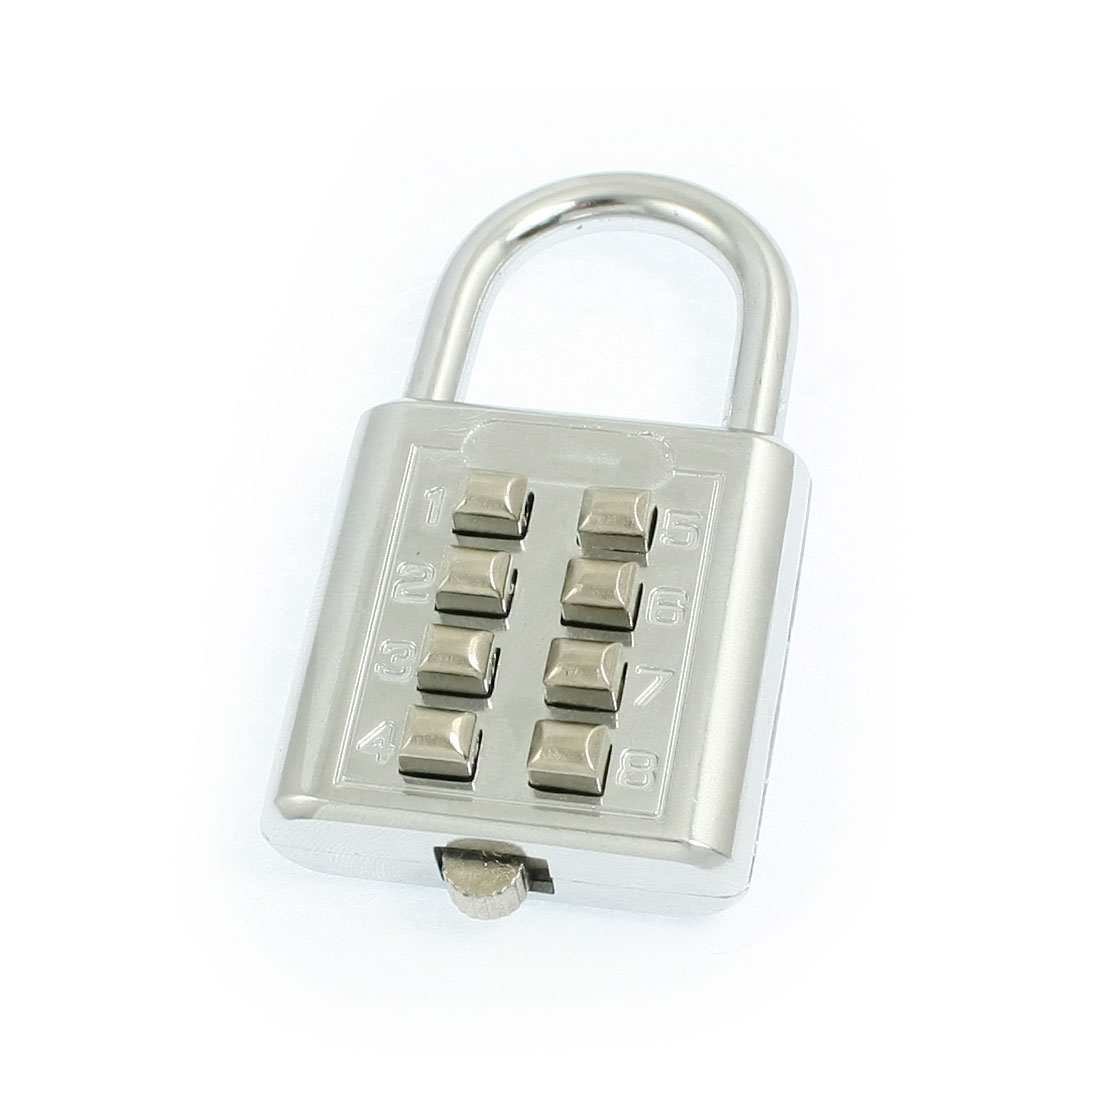 Silver Tone Metal 4 Digits Luggage Combination Password Padlock